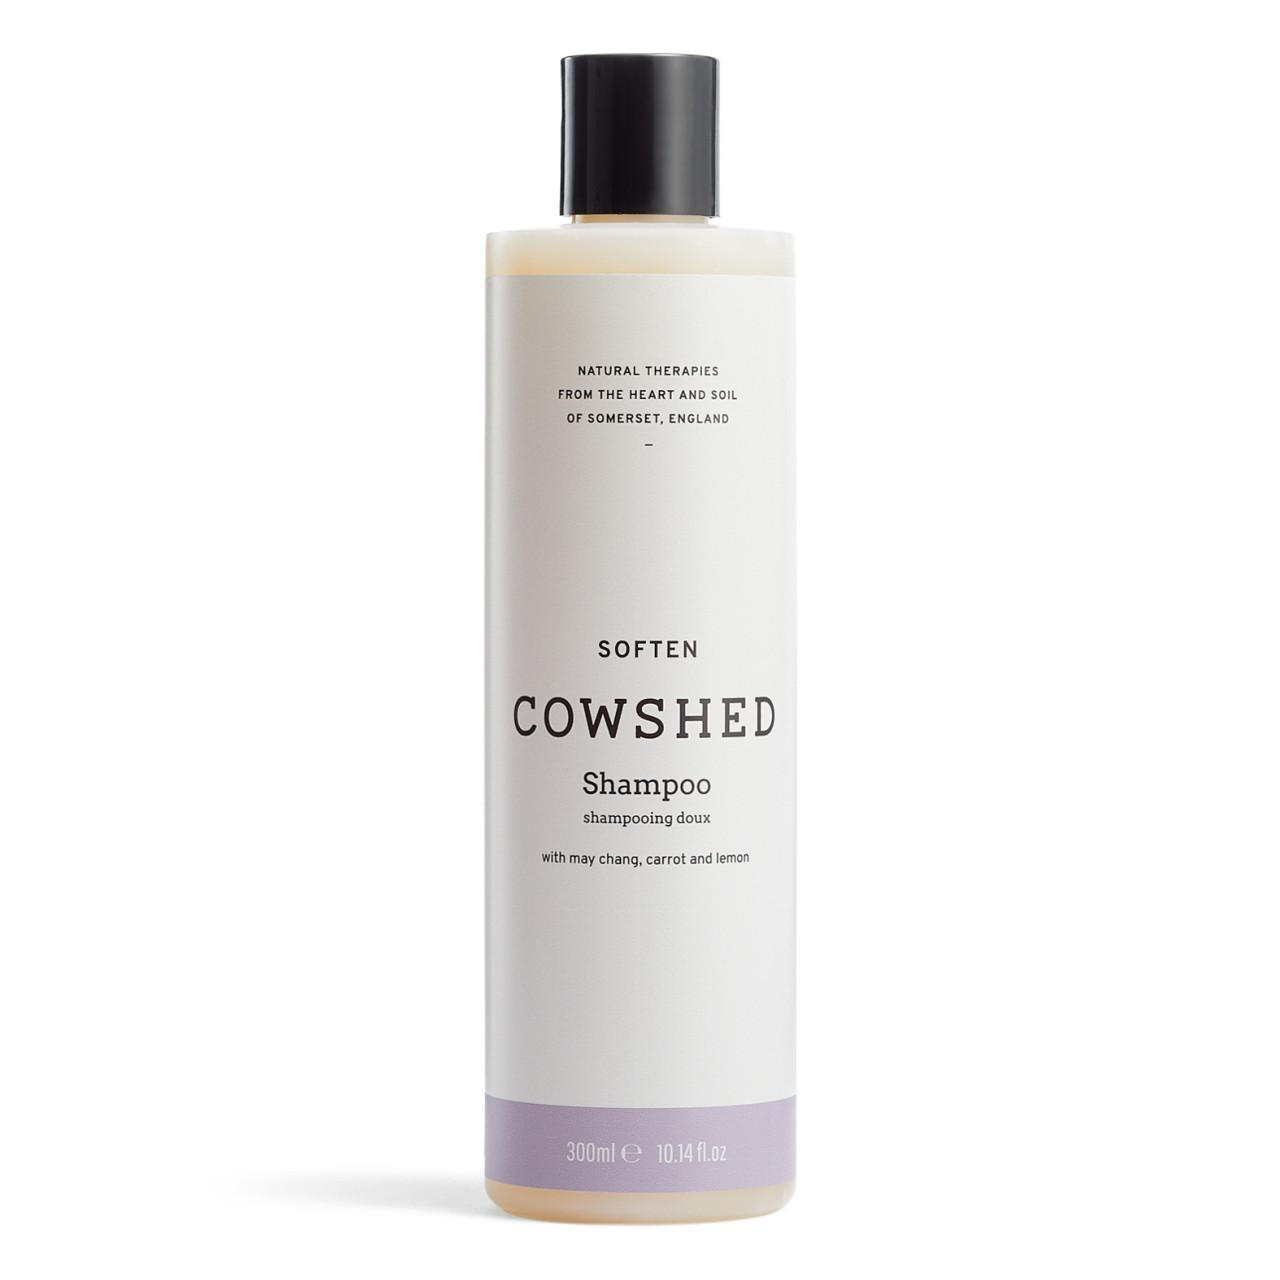 Cowshed Shampoo and Conditioner